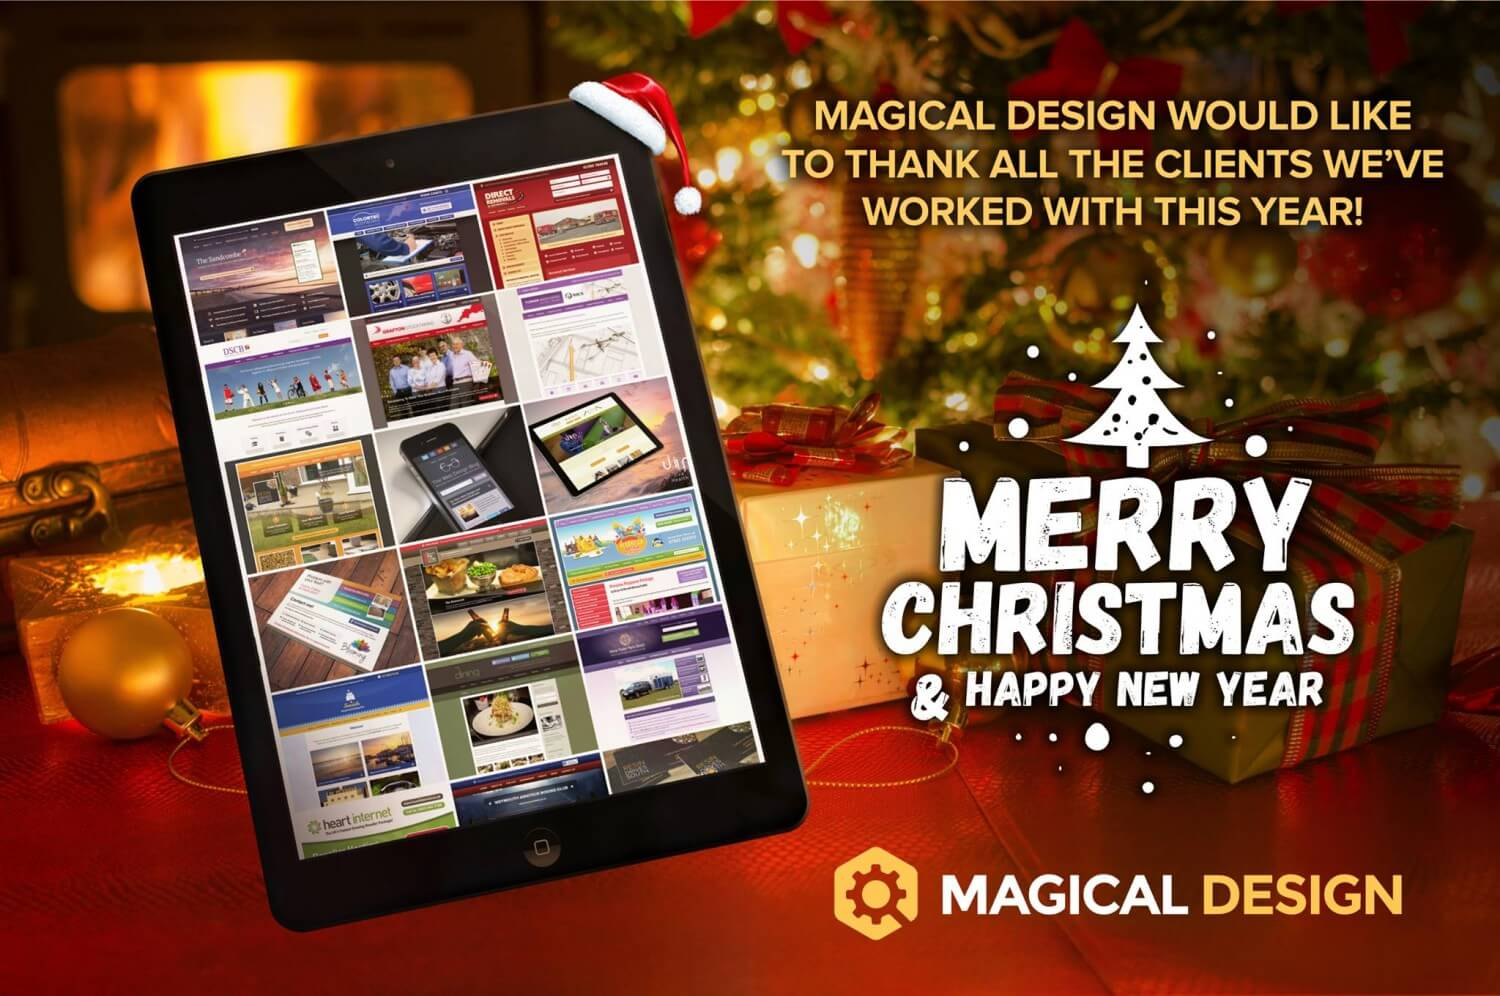 Merry Christmas And A Happy New Year From Magical Design!